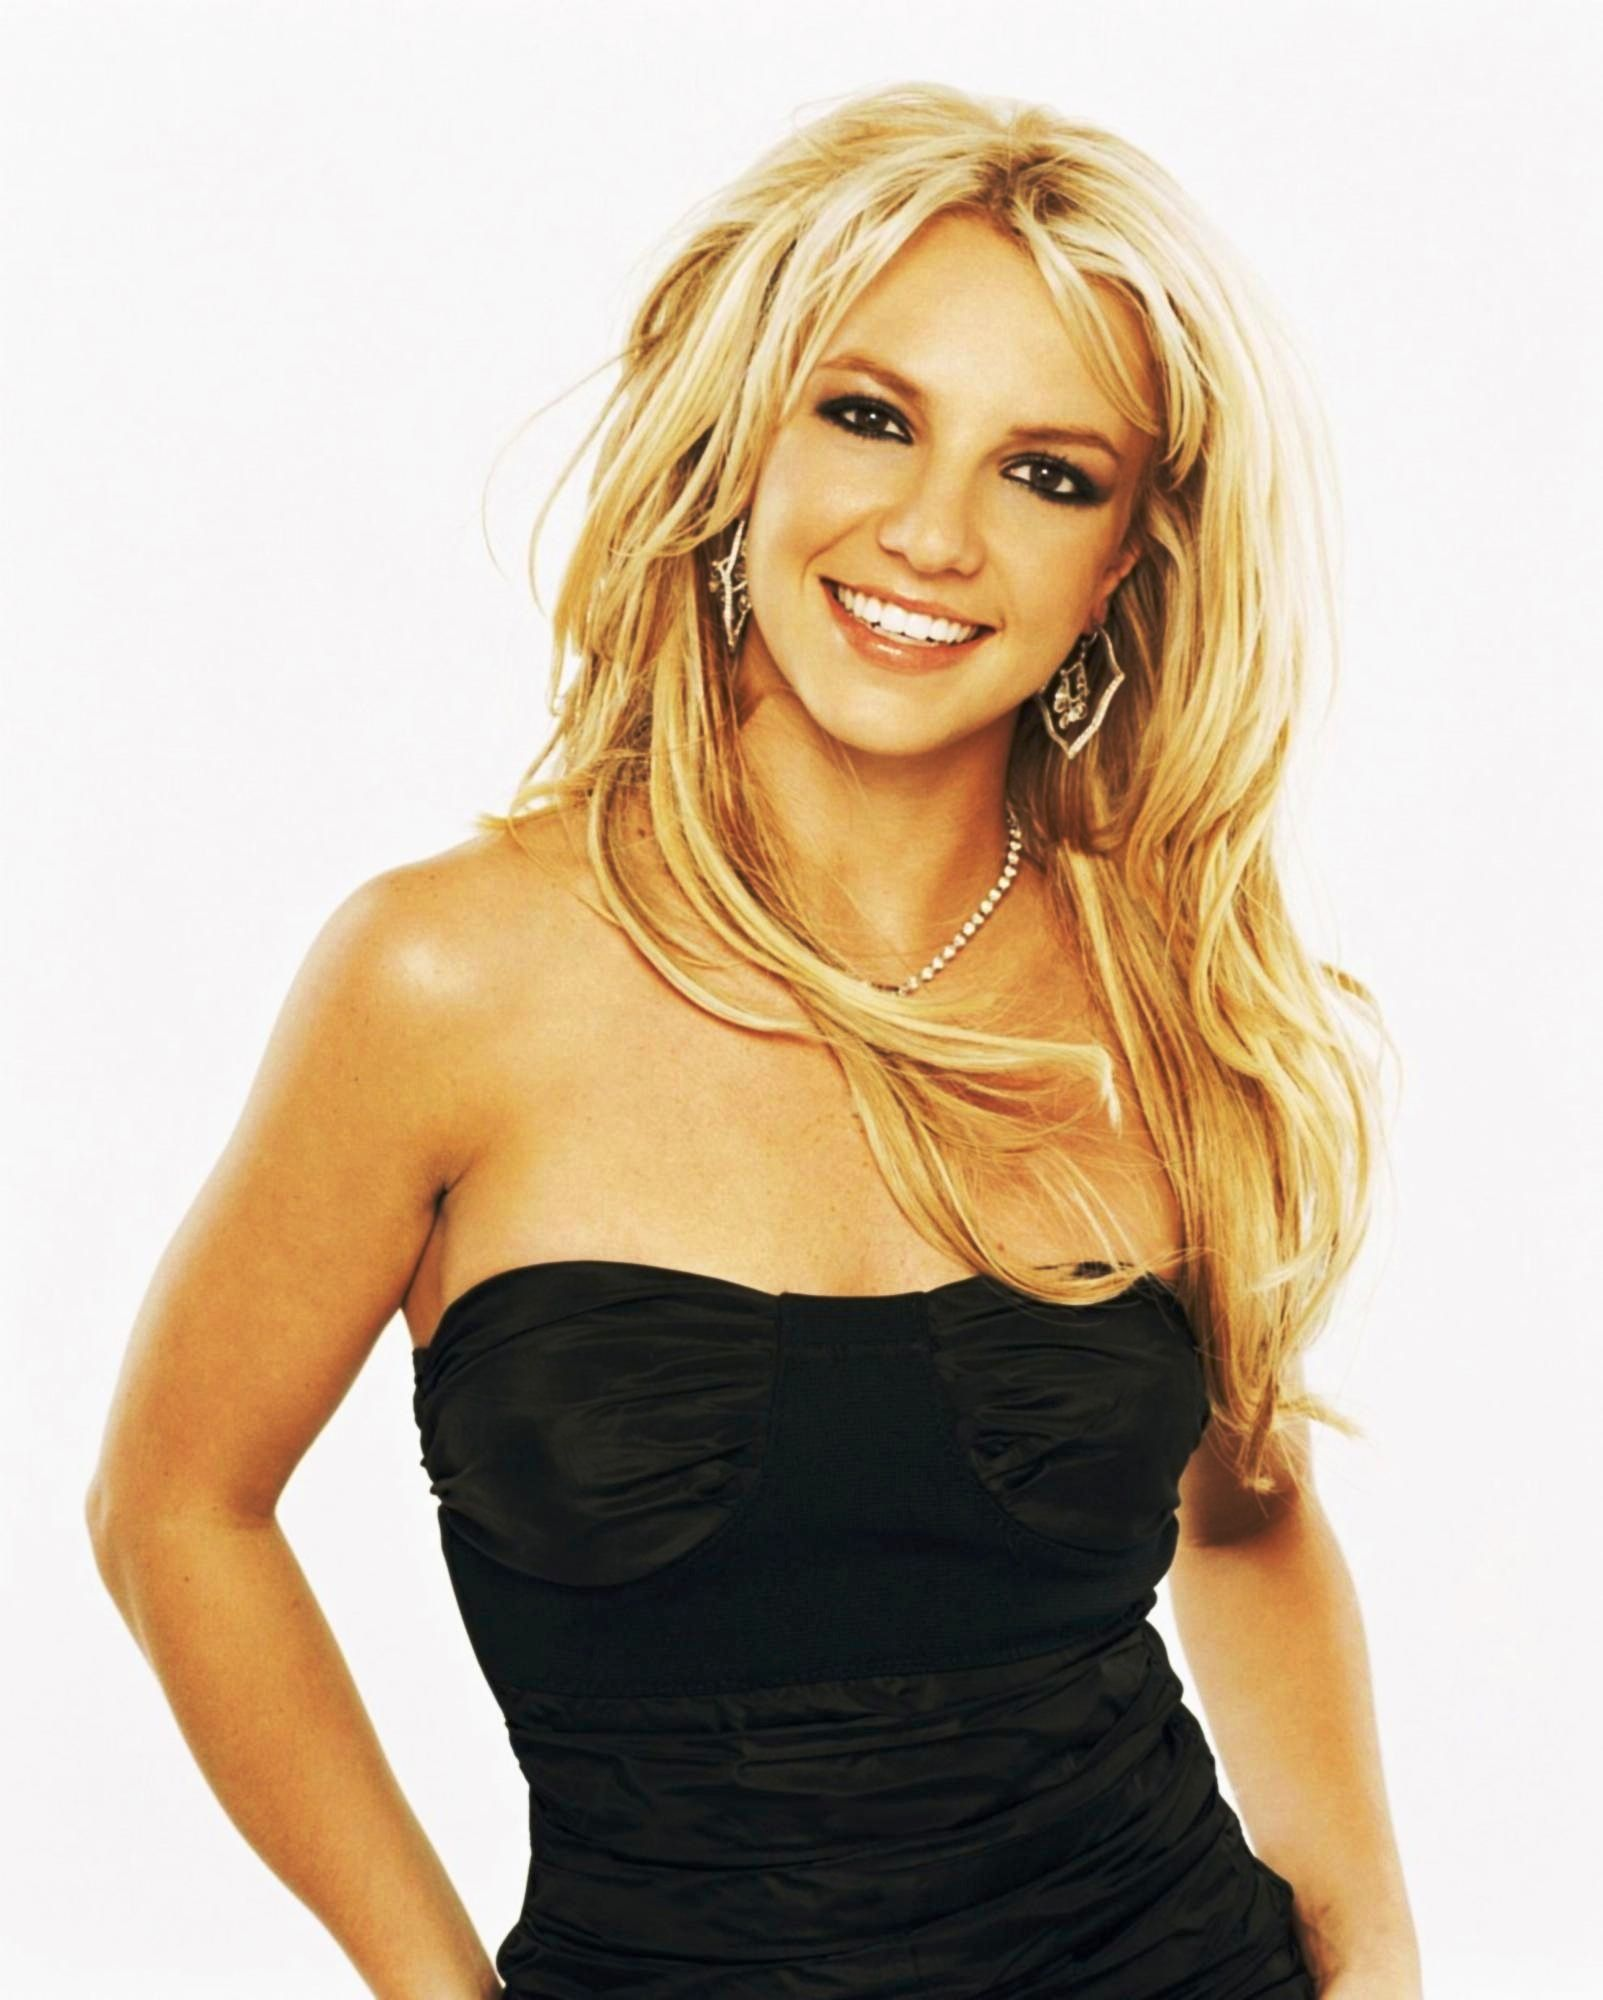 britney spears beautiful - photo #37